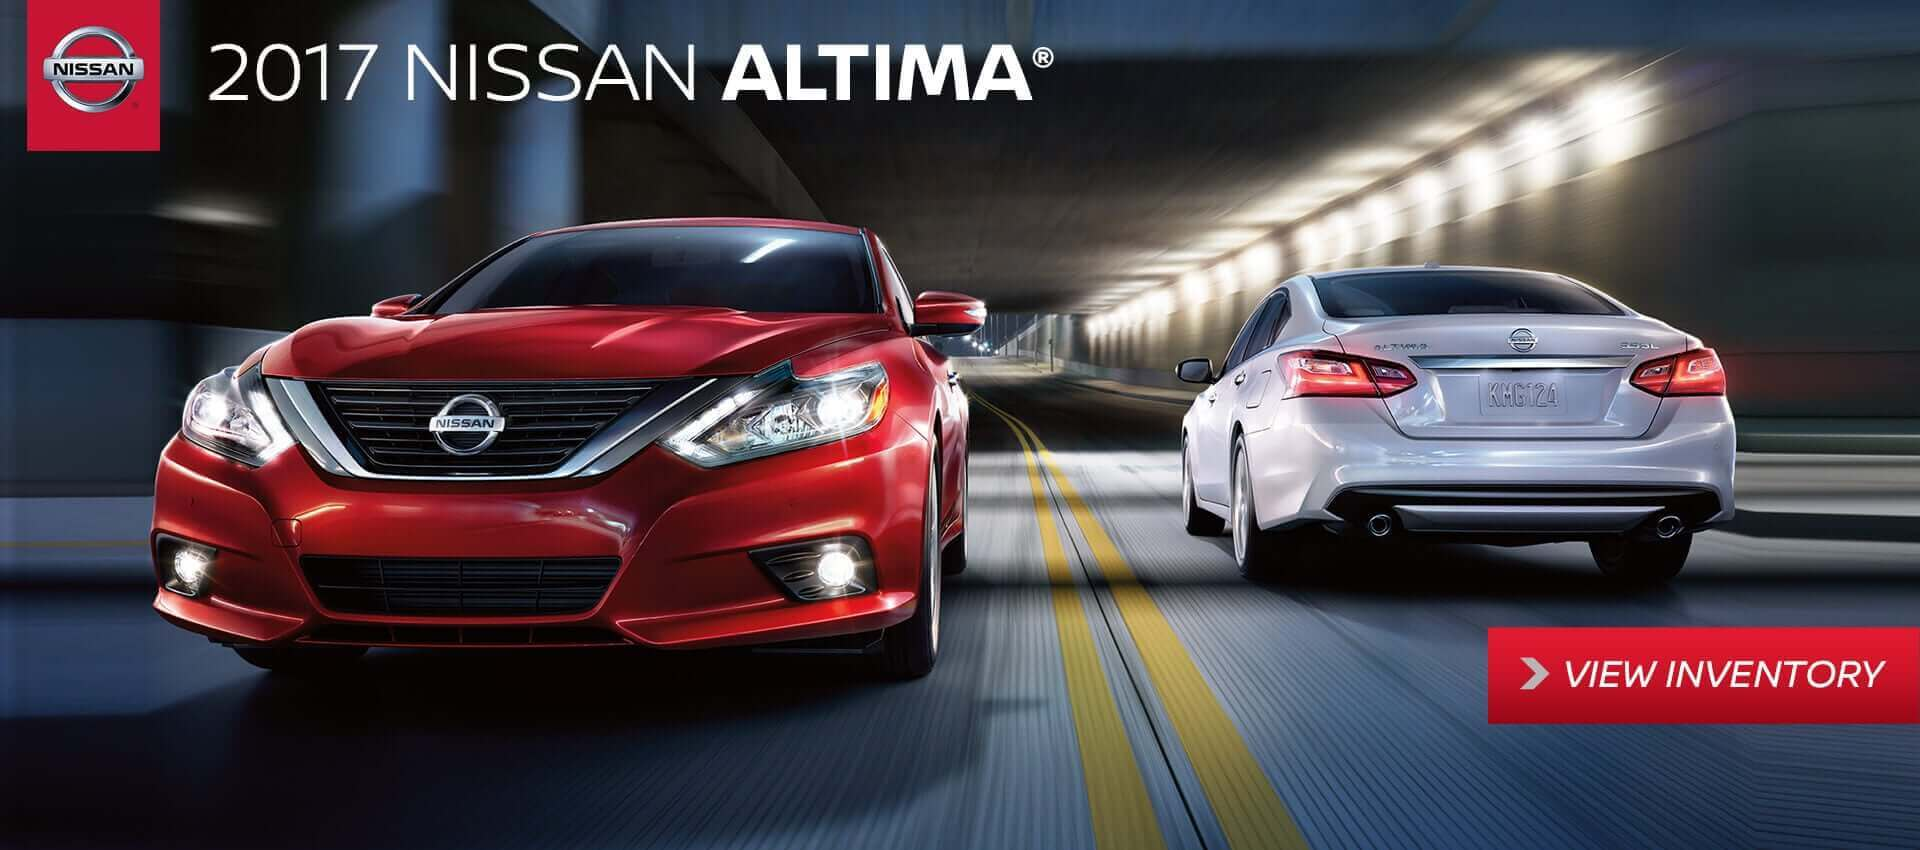 Canned Altima